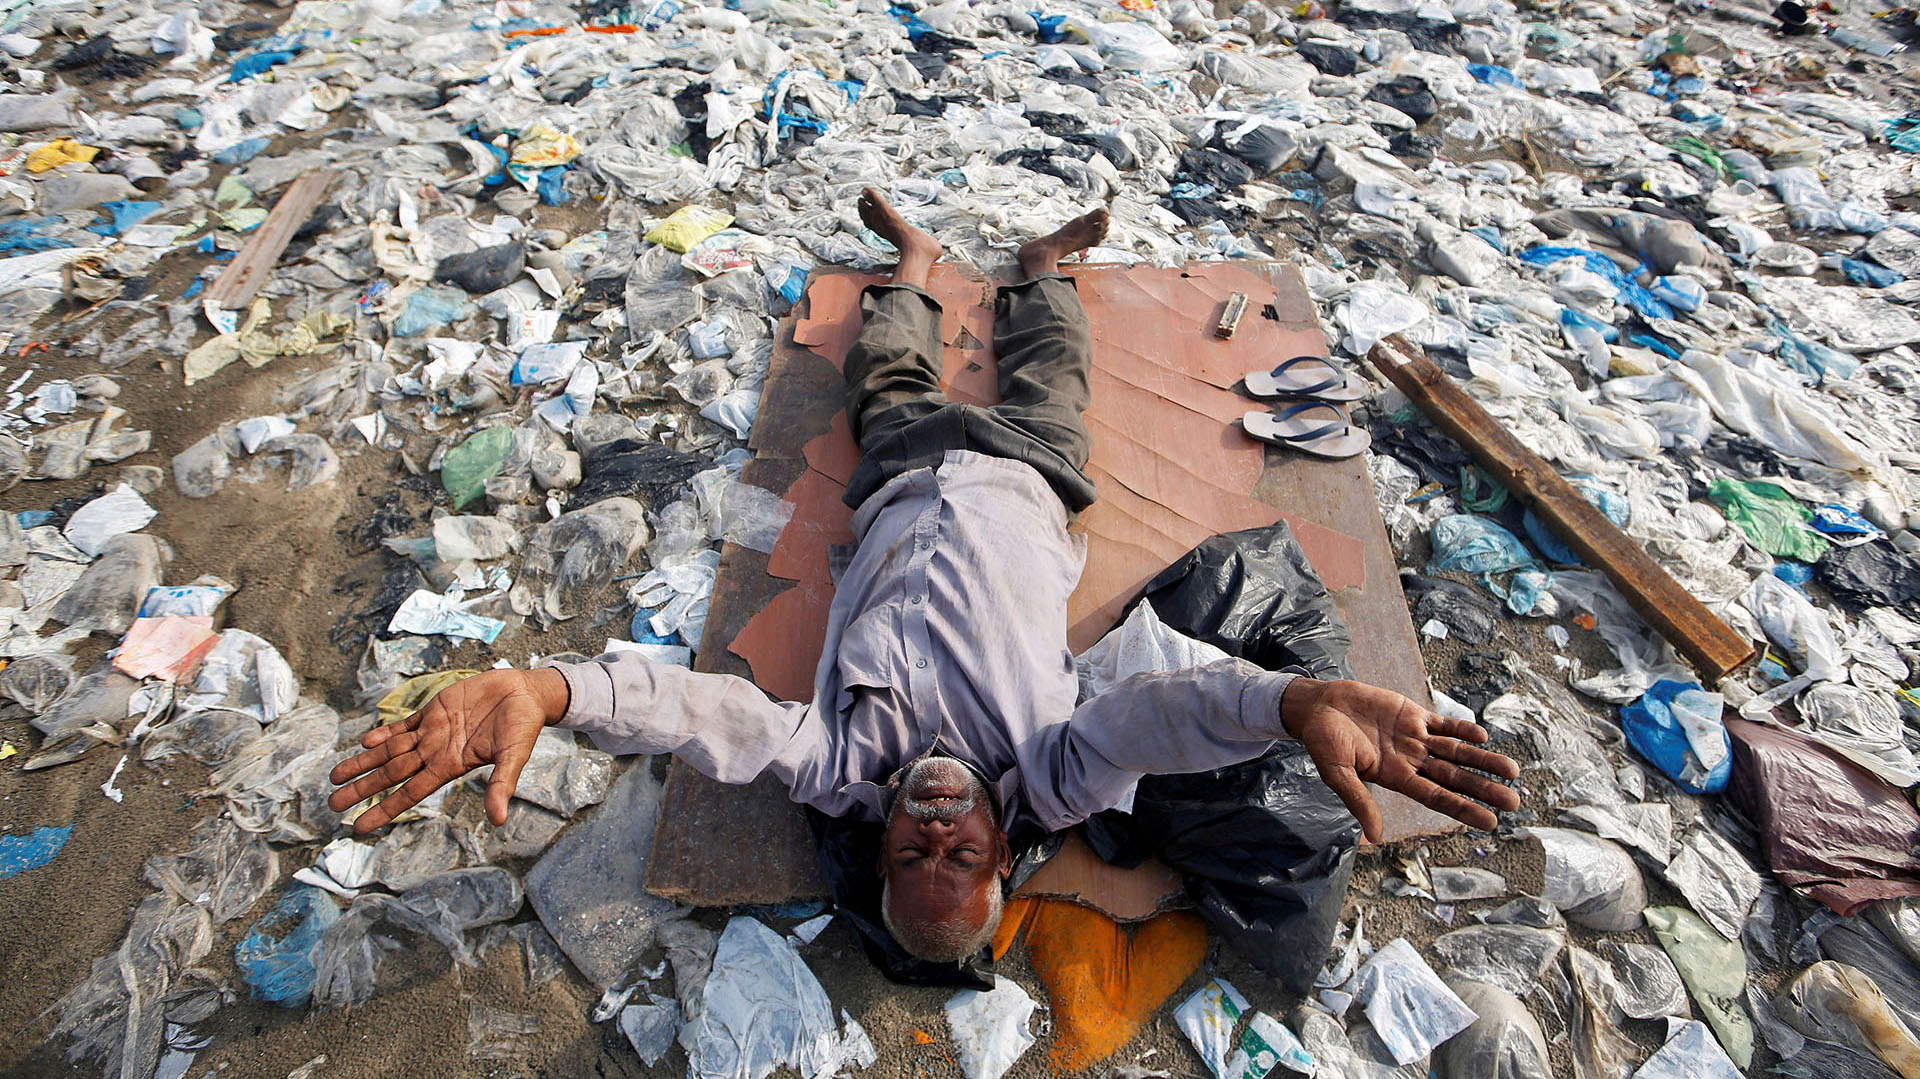 Un hombre se recuesta en una playa repleta de basura en Mumbai, India (REUTERS/Francis Mascarenhas TPX IMAGES OF THE DAY)